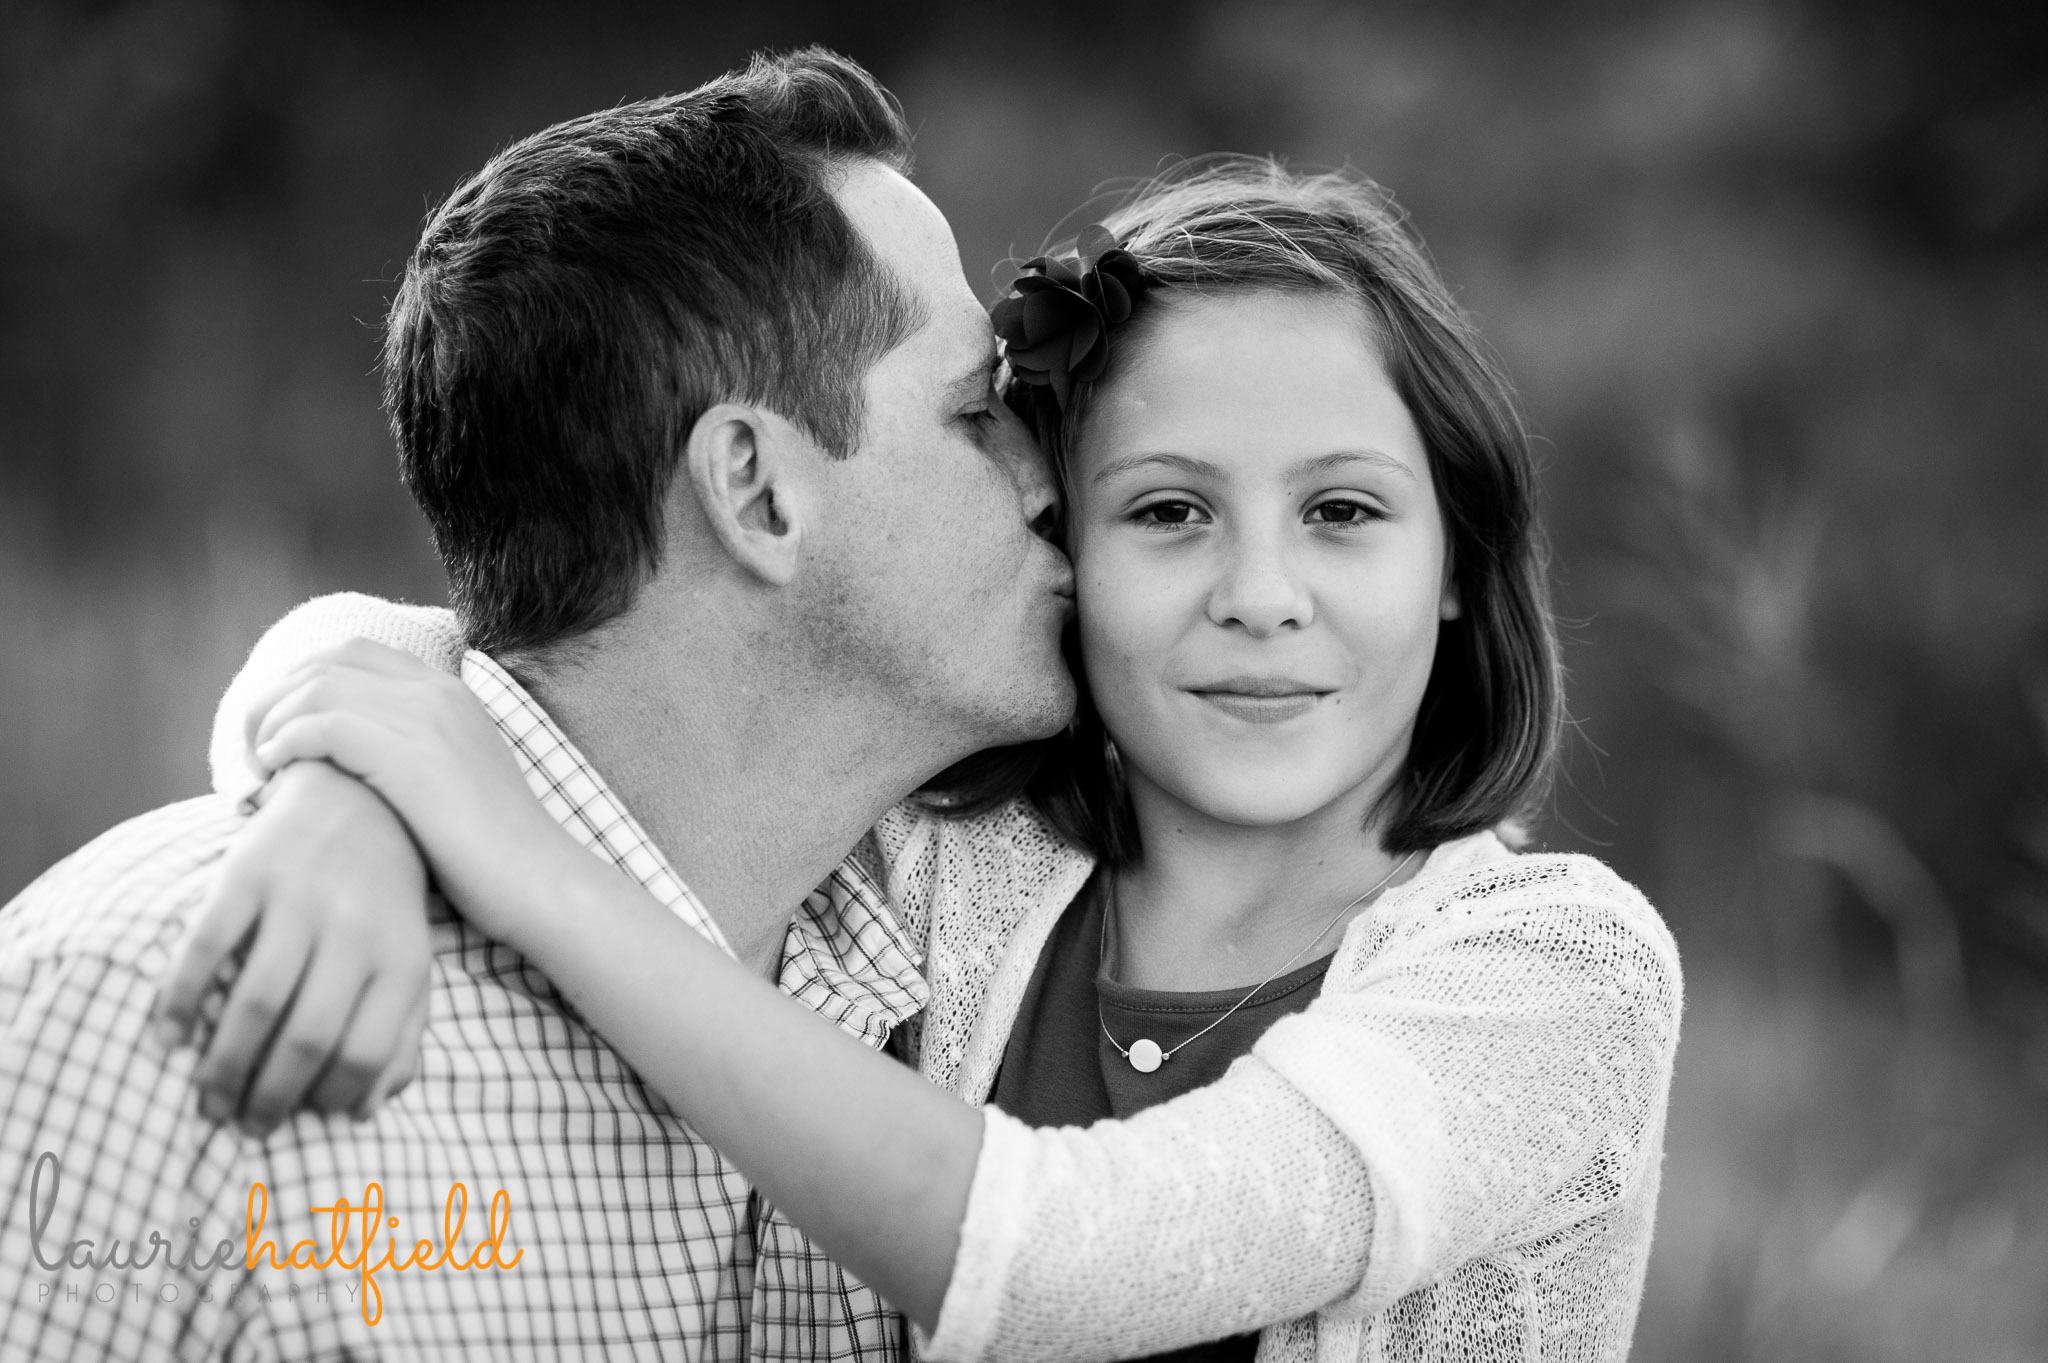 dad kissing daughter | Mobile family photographer